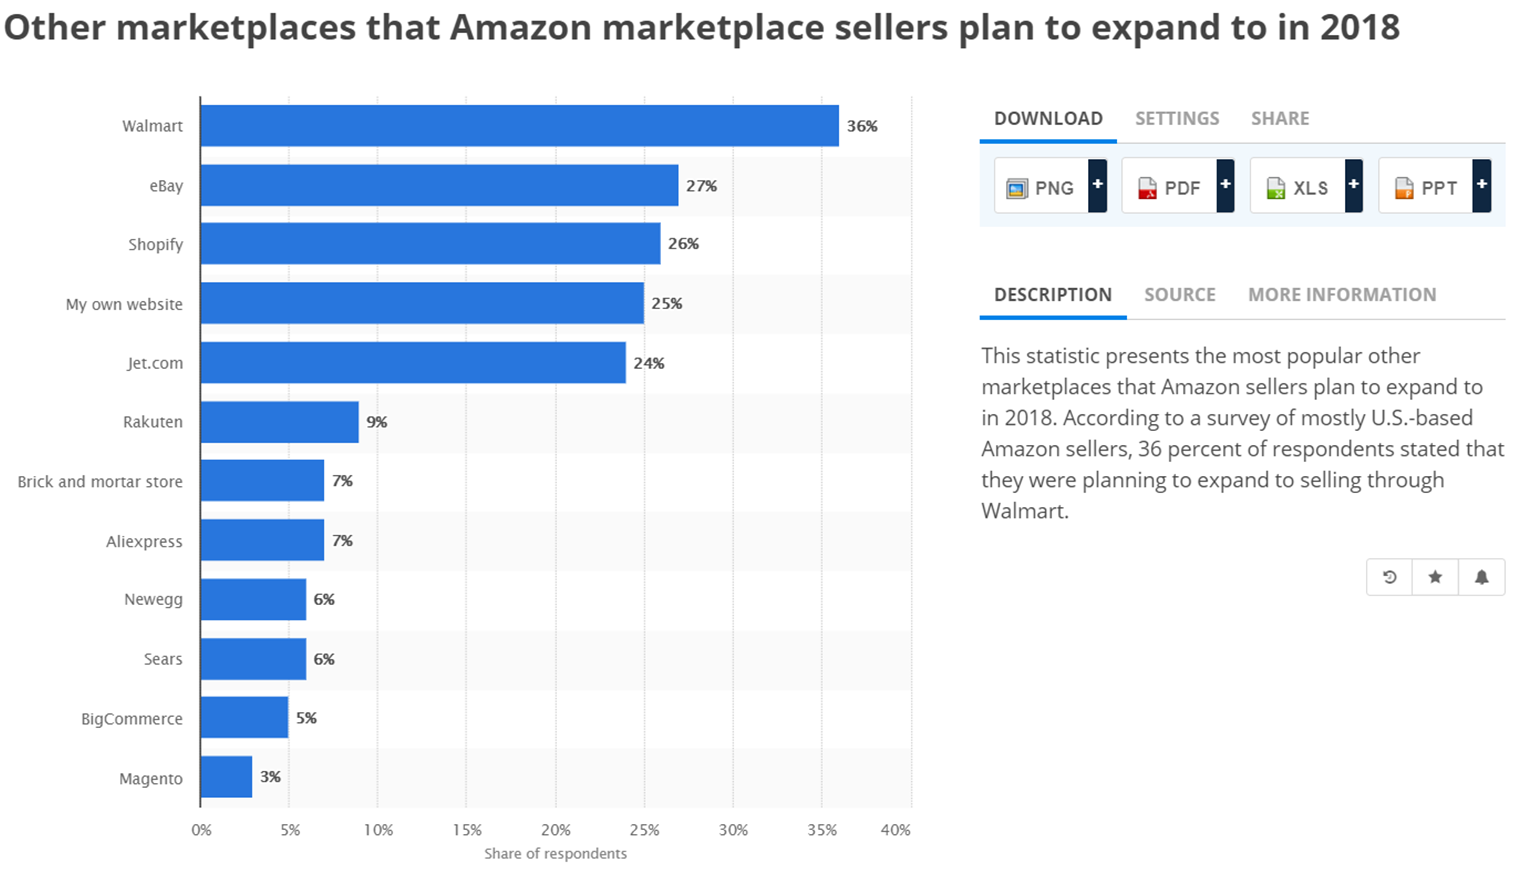 Other marketplaces that Amazon marketplace sellers plan to expand to in 2018